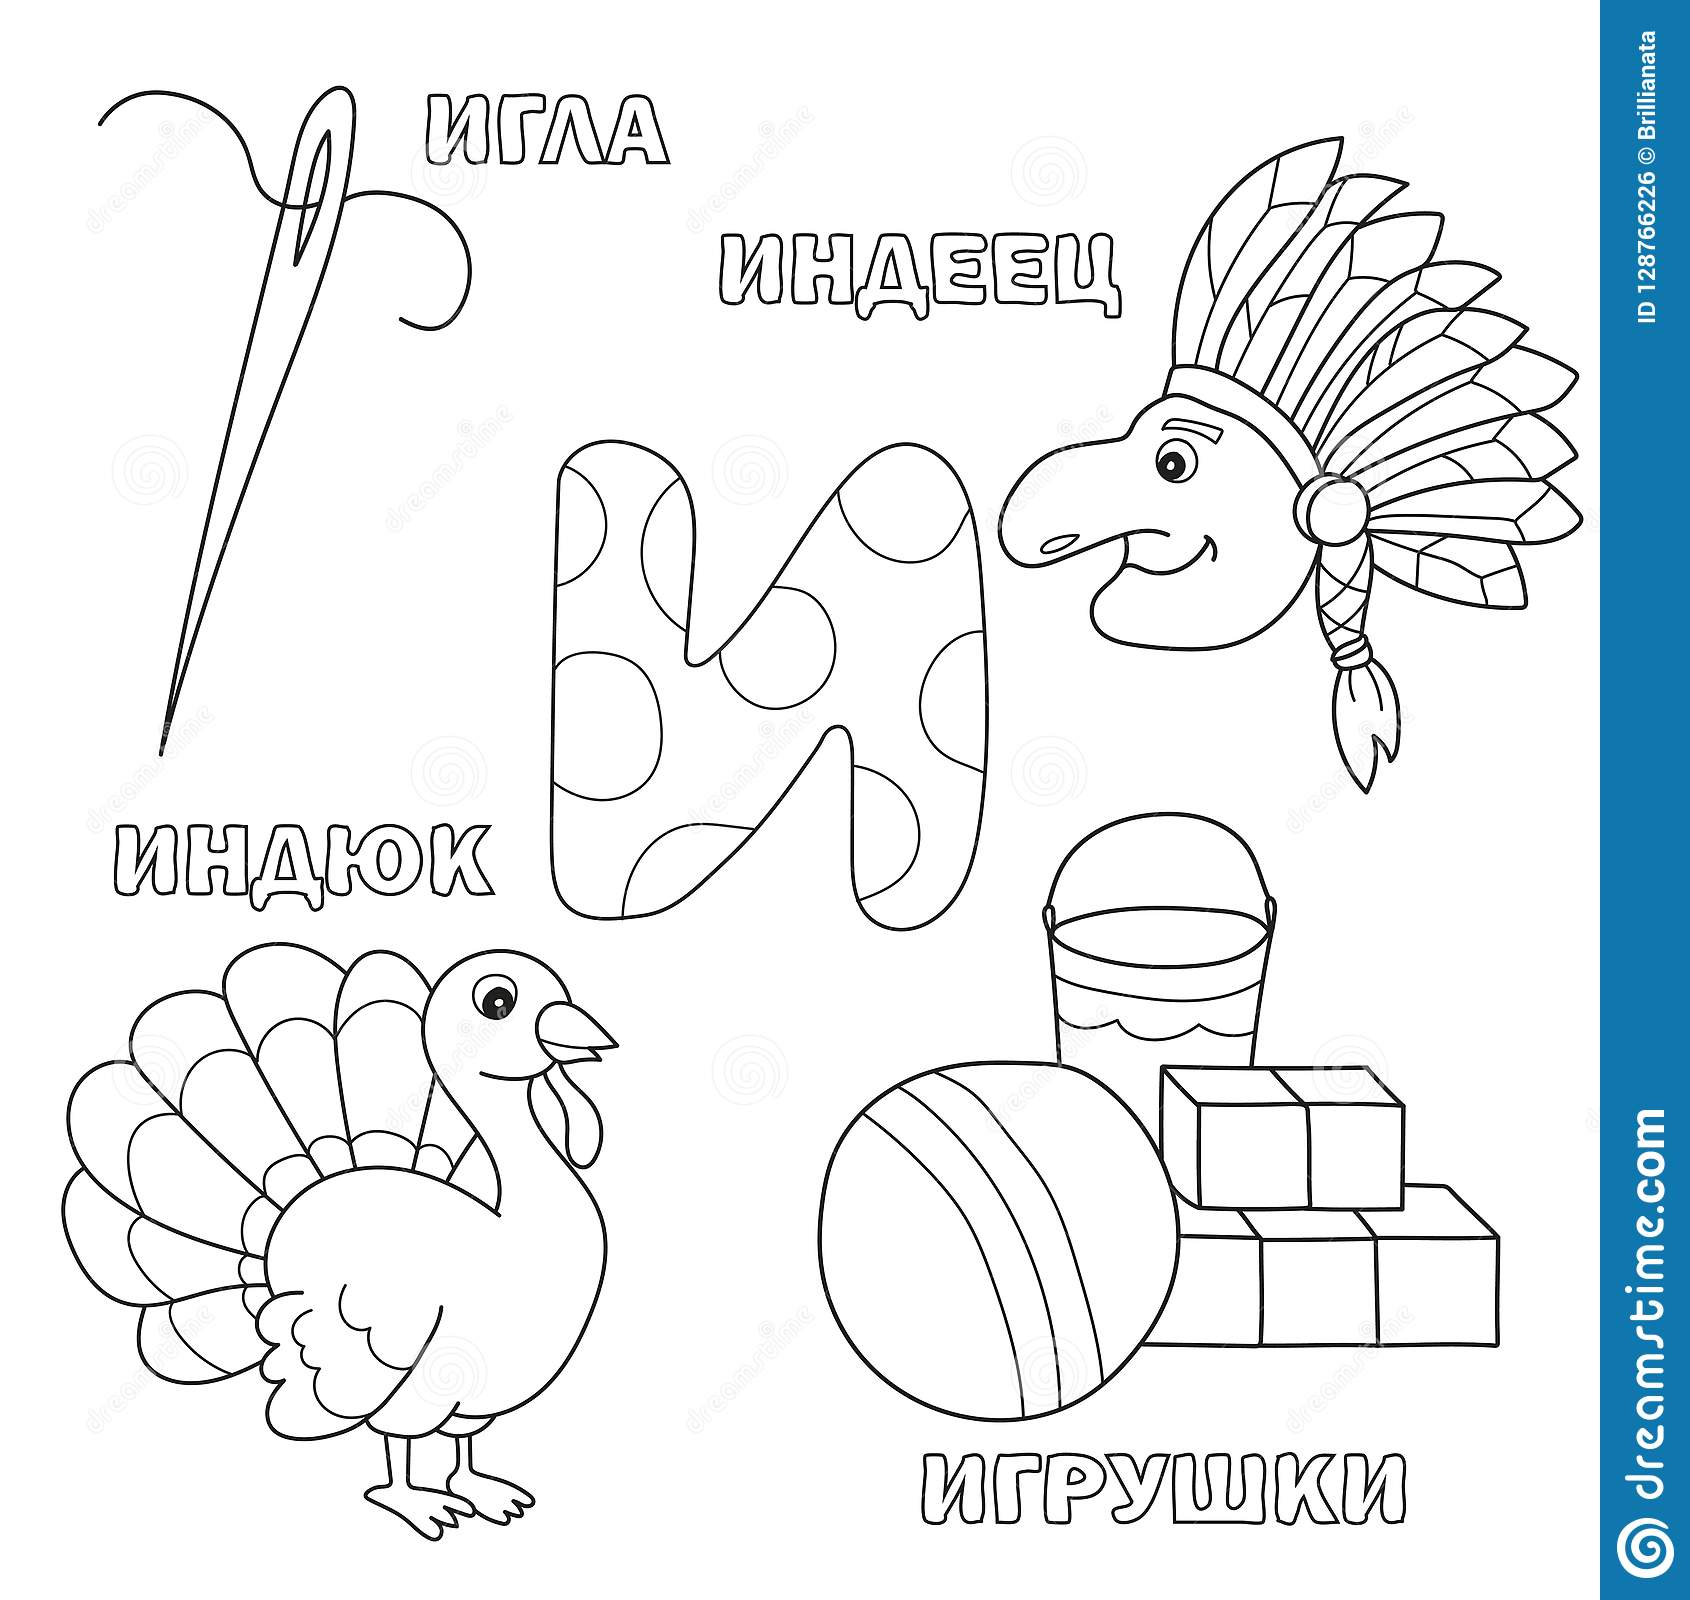 Alphabet Letter With Russian I. Pictures Of The Letter - Coloring ...